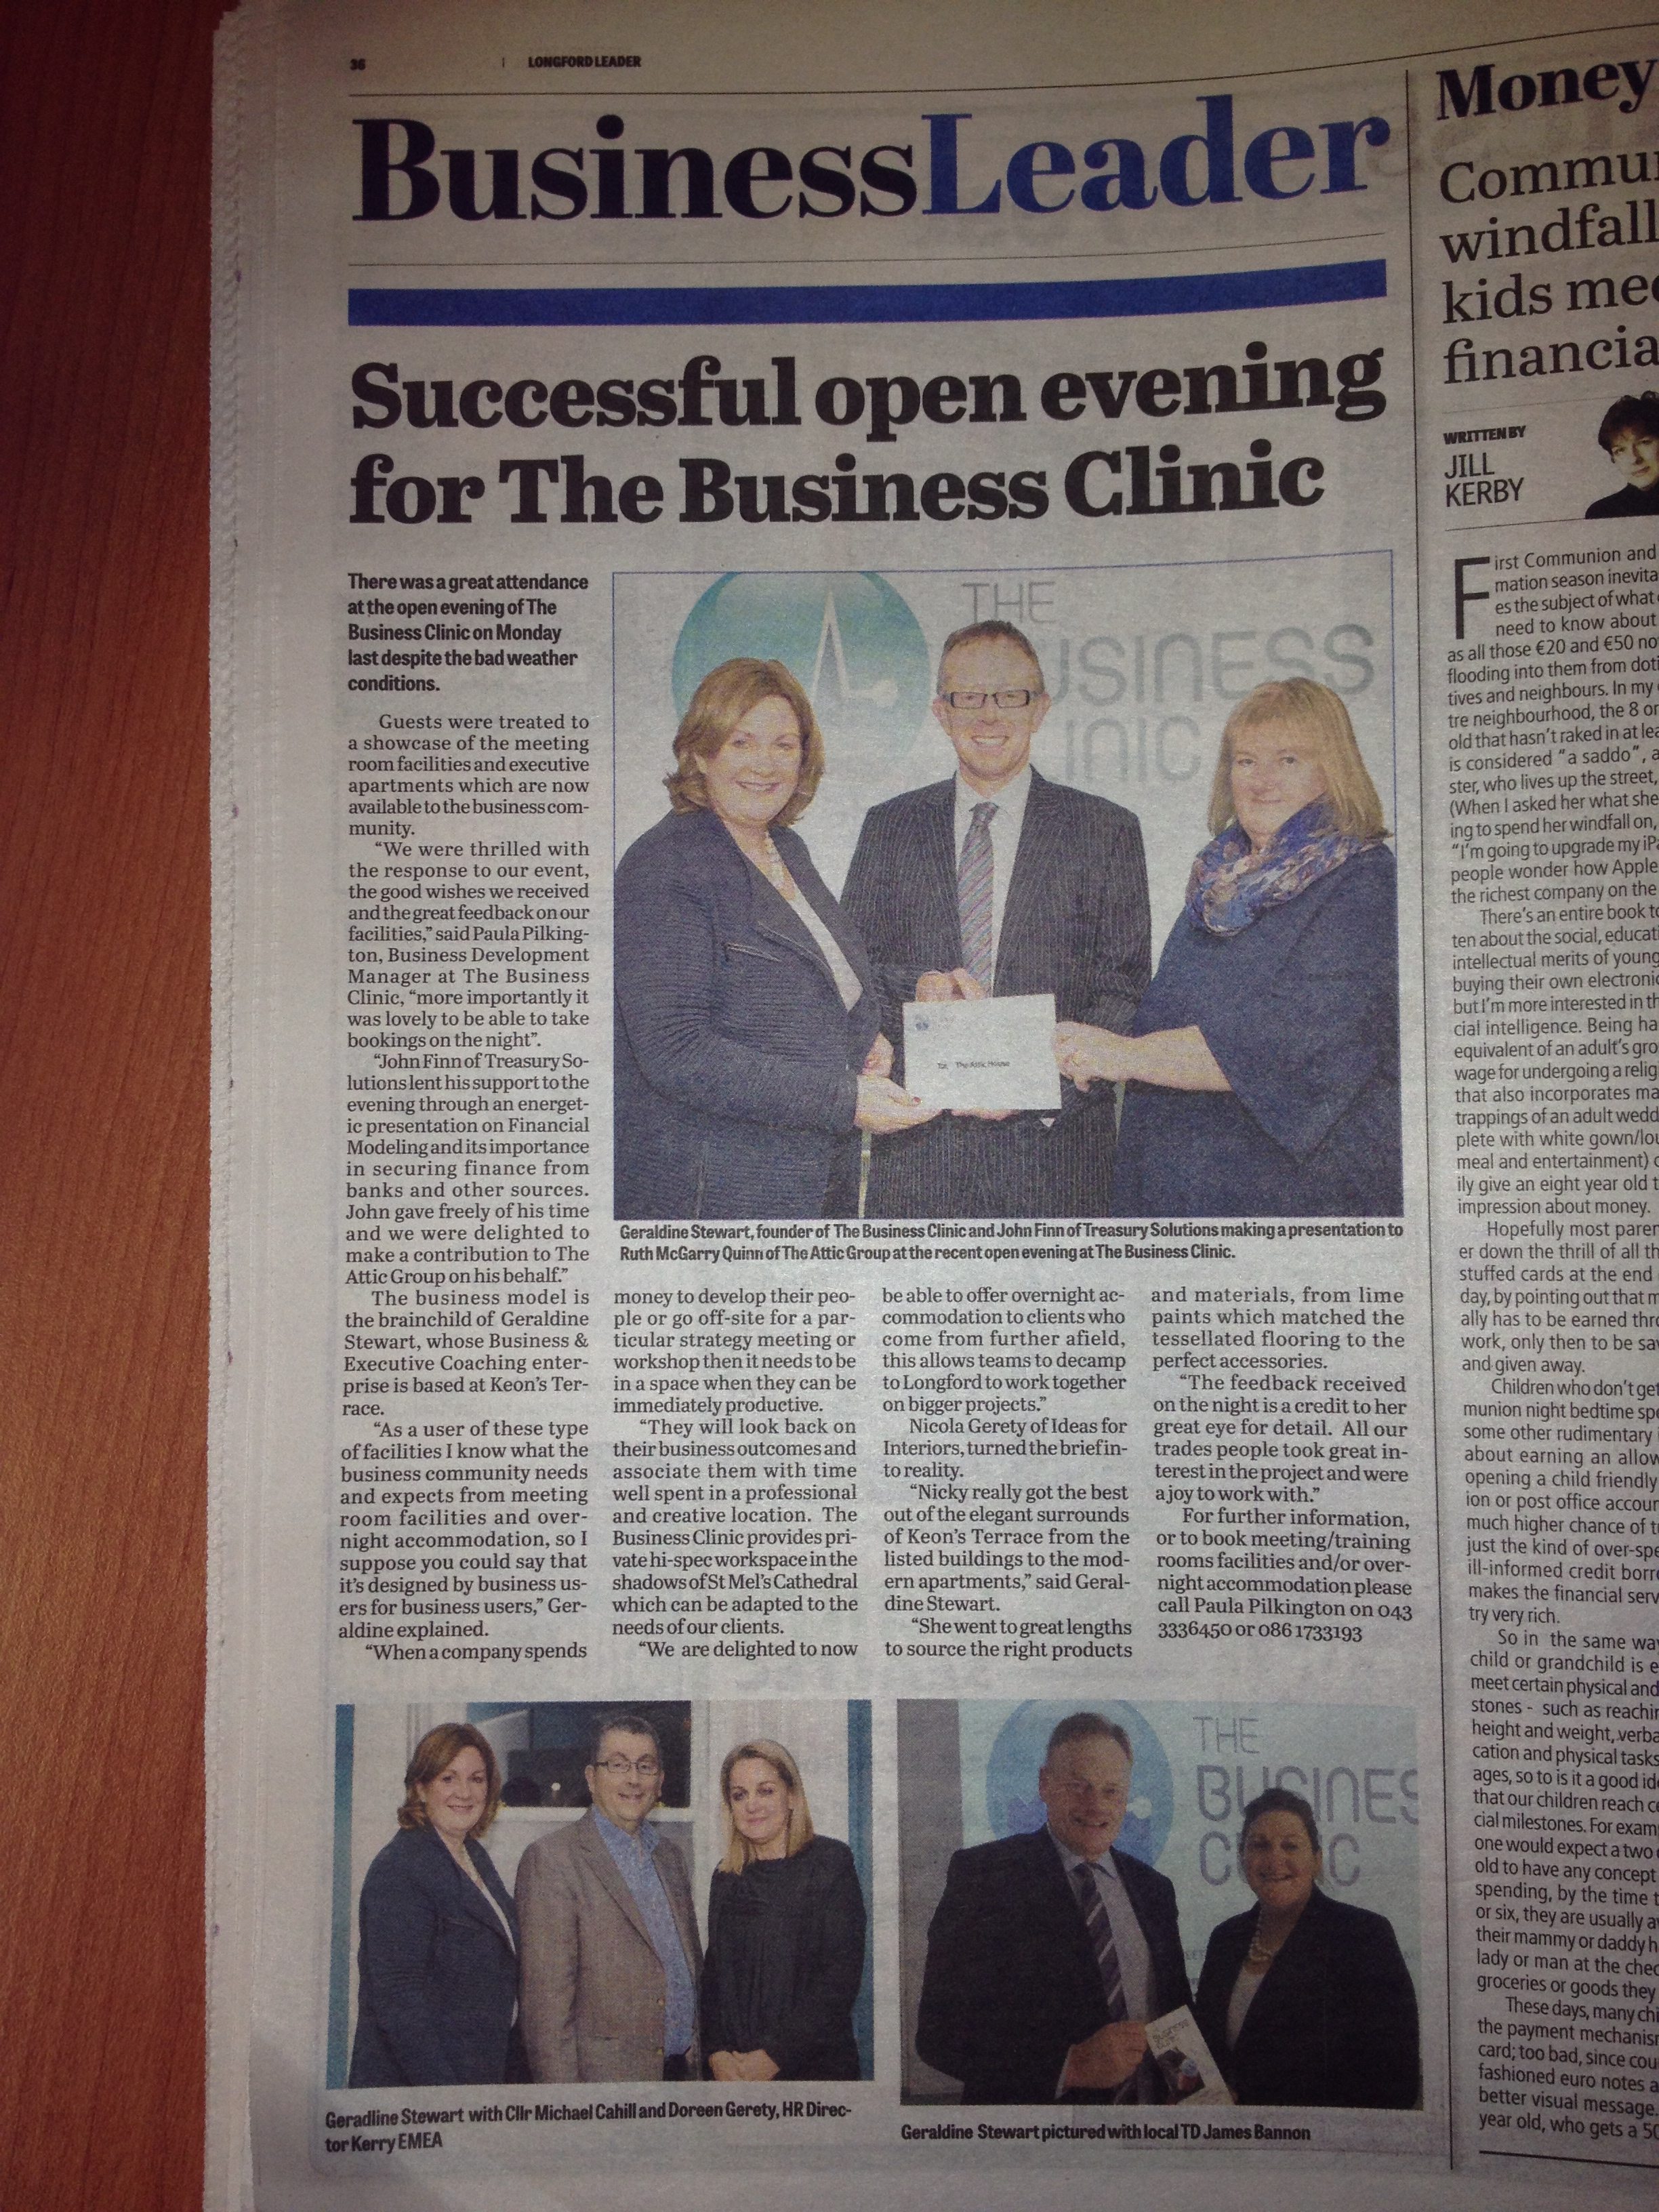 Longford Leader Editorial March 2015 - The Business Clinic